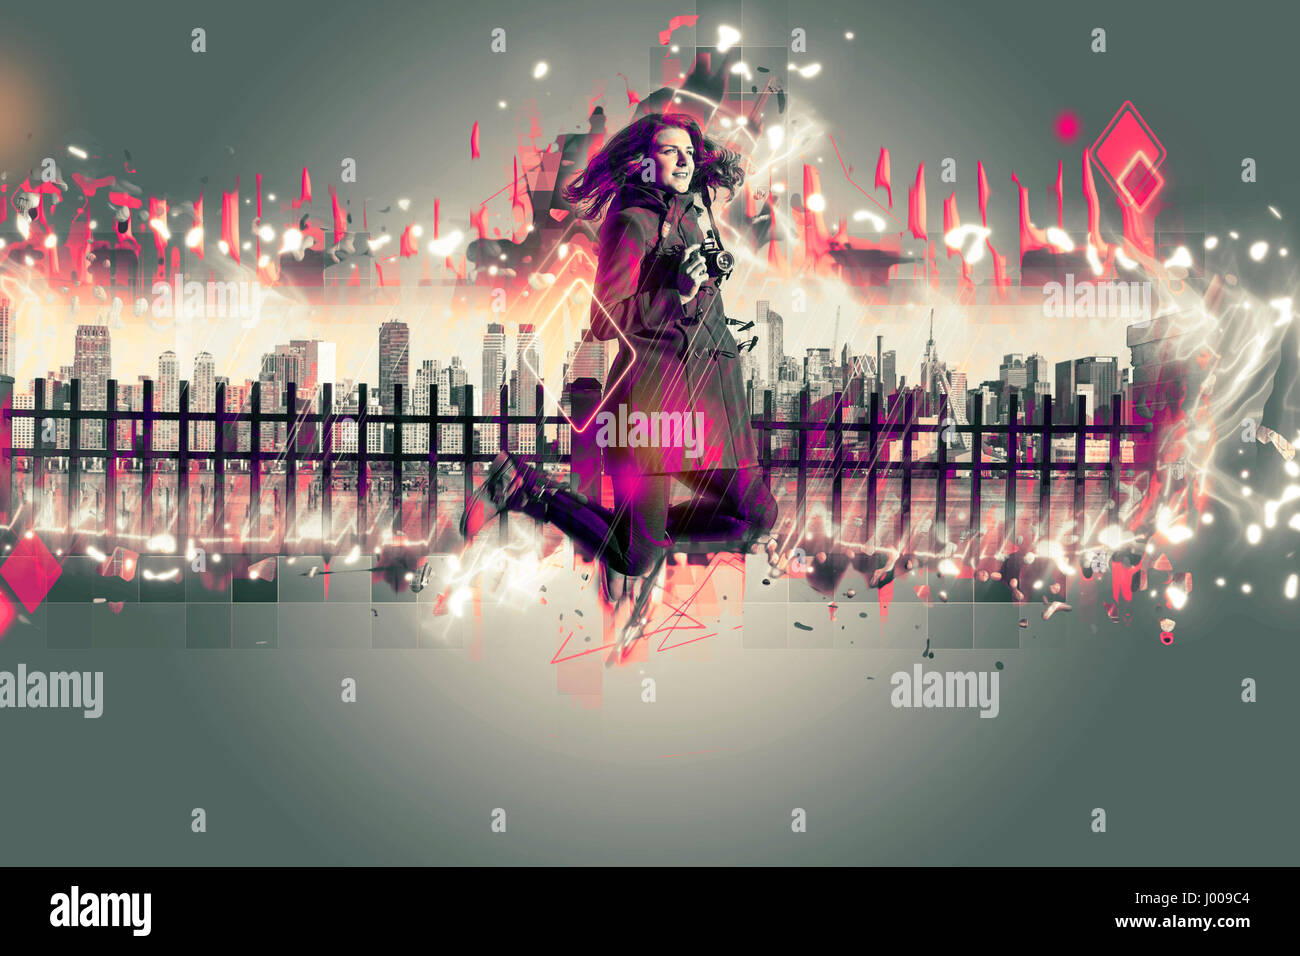 Young woman jumping in front of New York city. Architekt effect added. - Stock Image